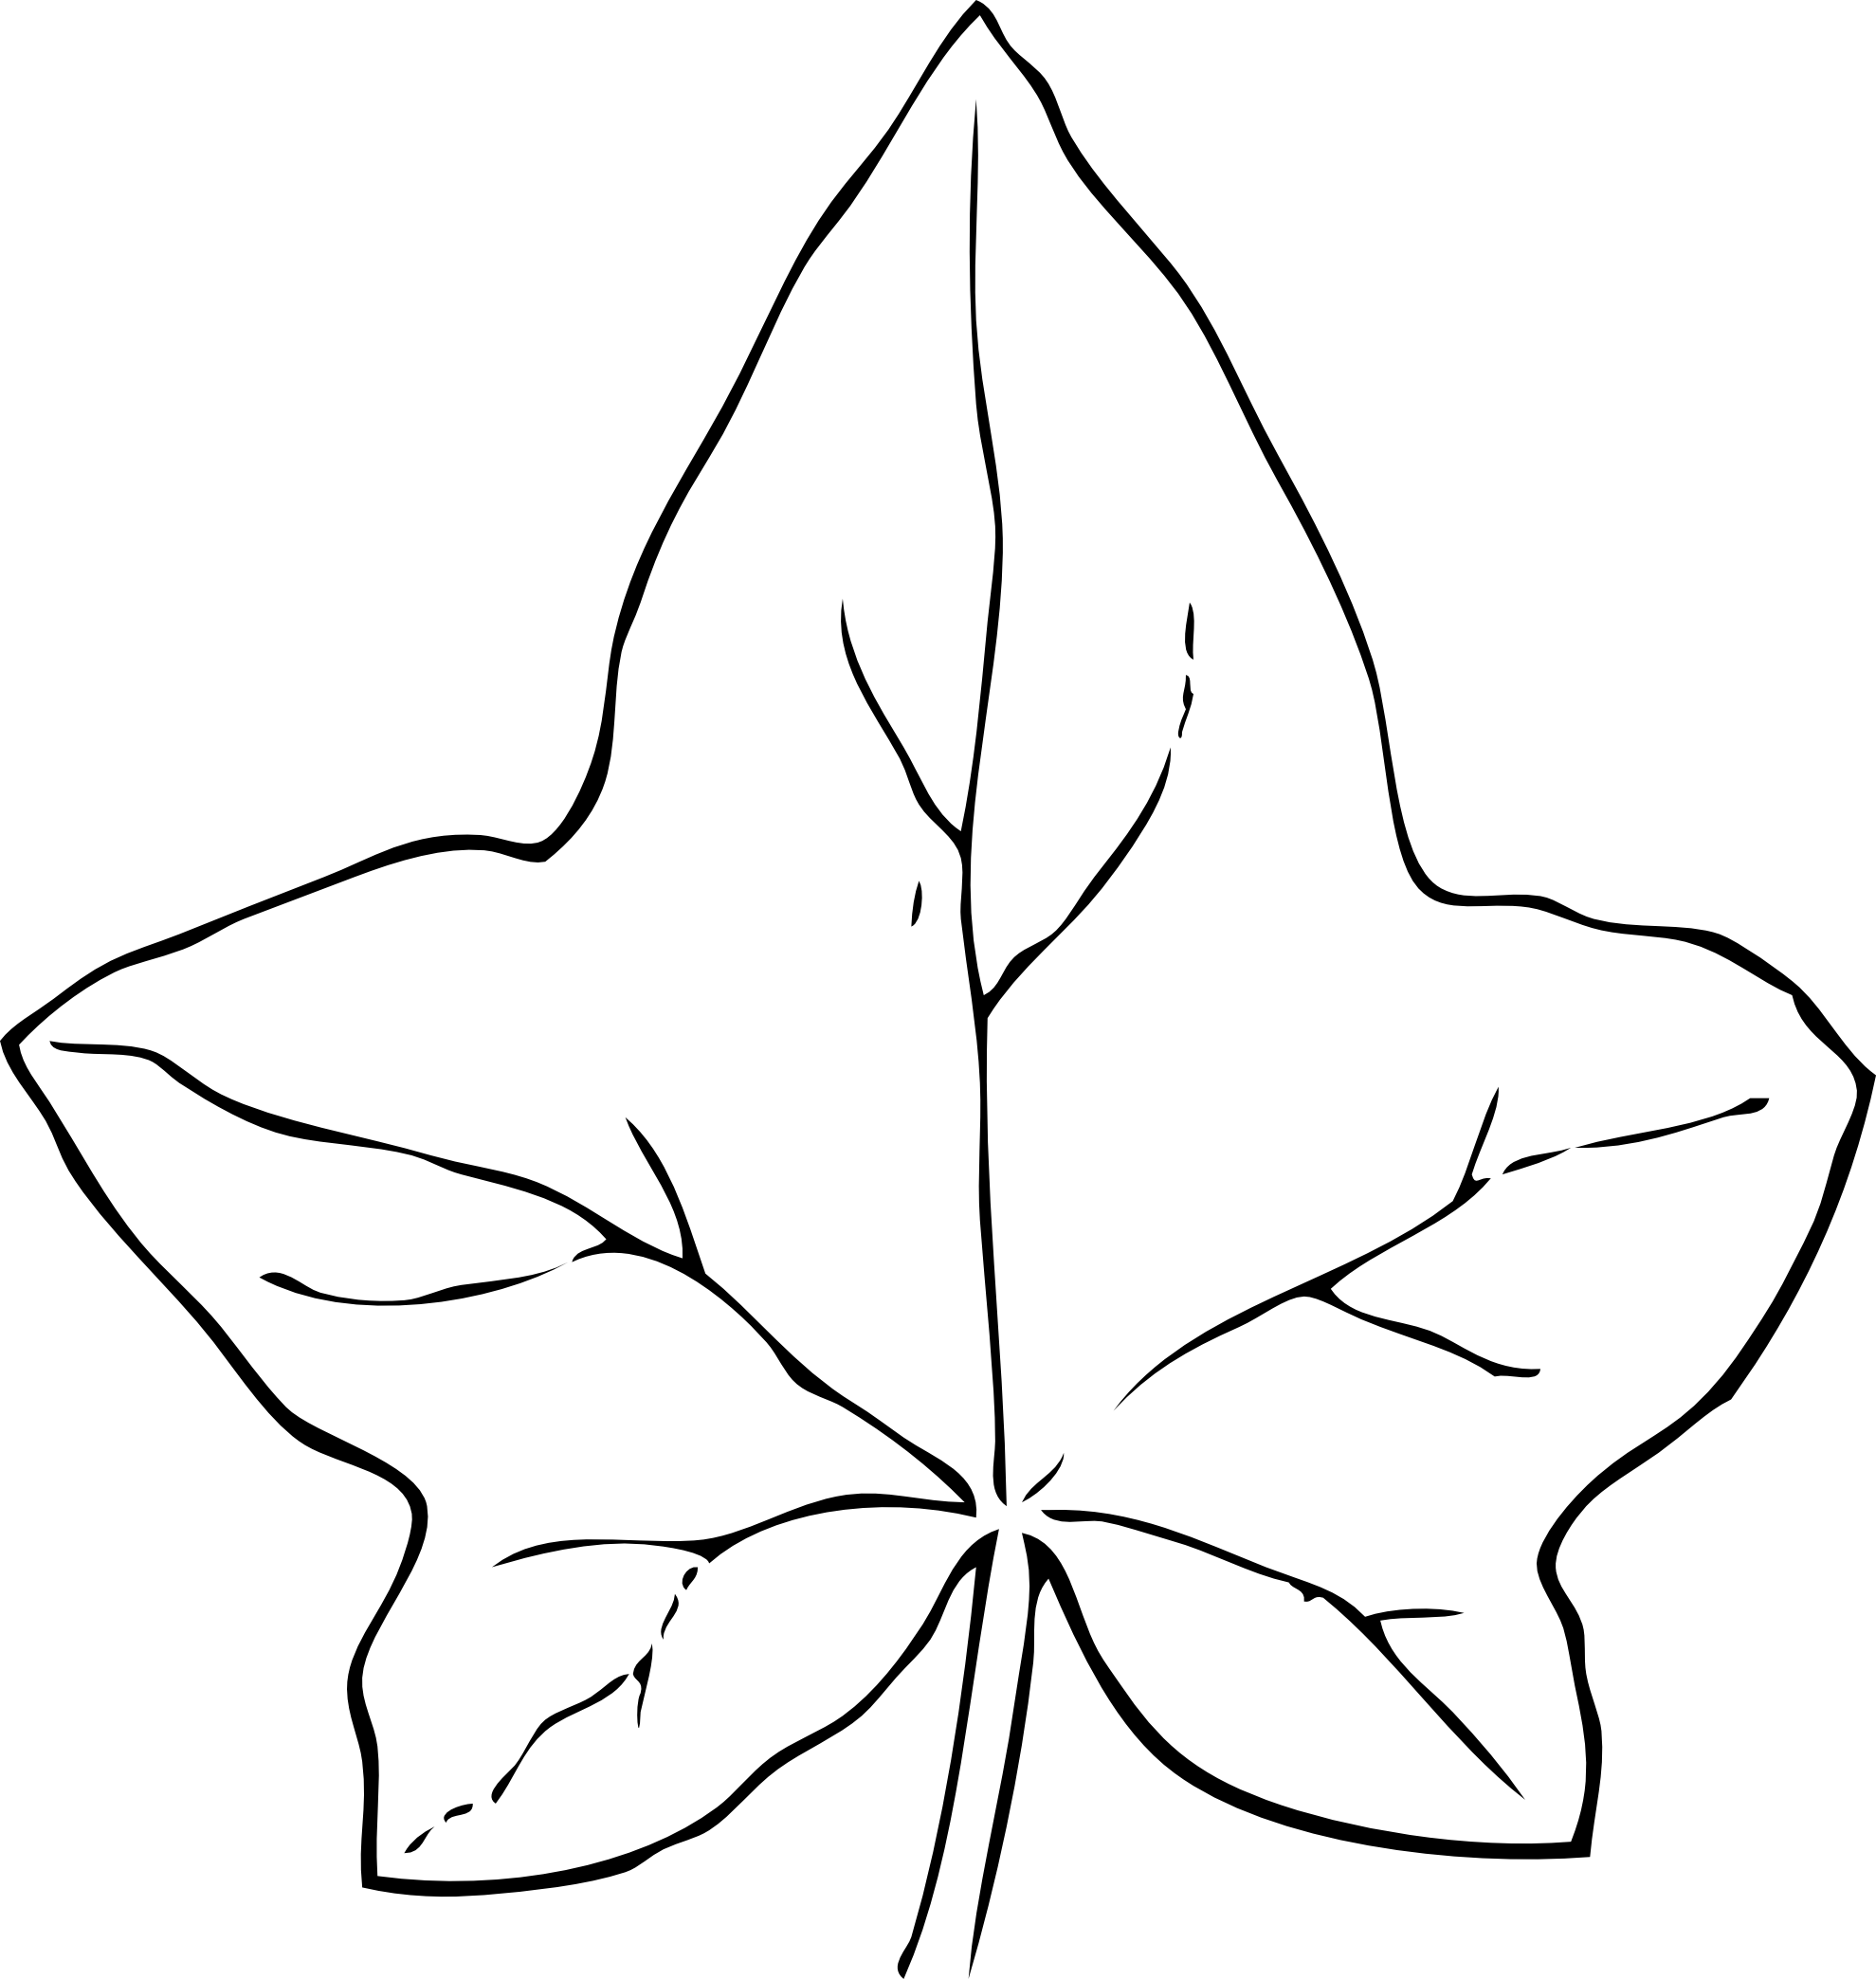 57 images of Black And White Leaf Clip Art . You can use these free ...